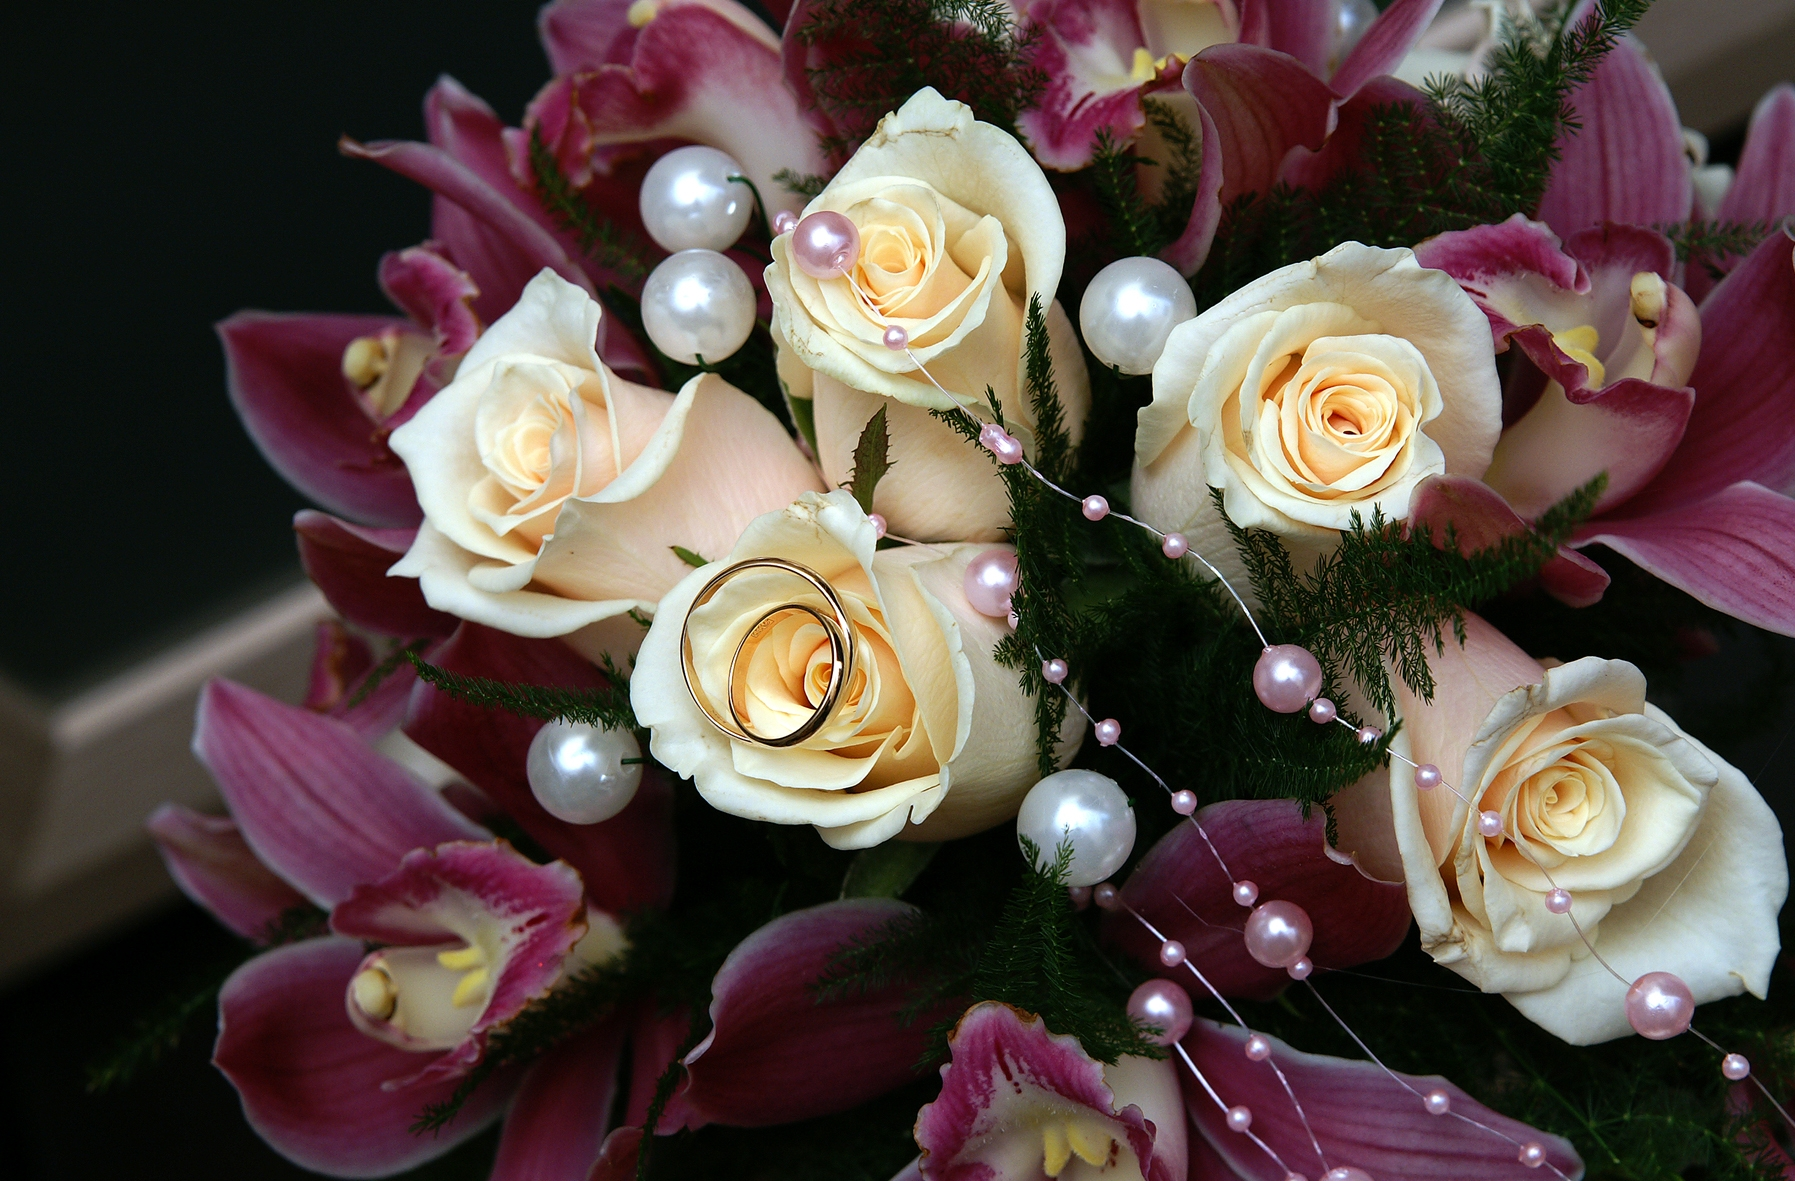 67050 download wallpaper Flowers, Roses, Lilies, Wedding, Rings, Beads, Bouquet, Happiness, Joy screensavers and pictures for free